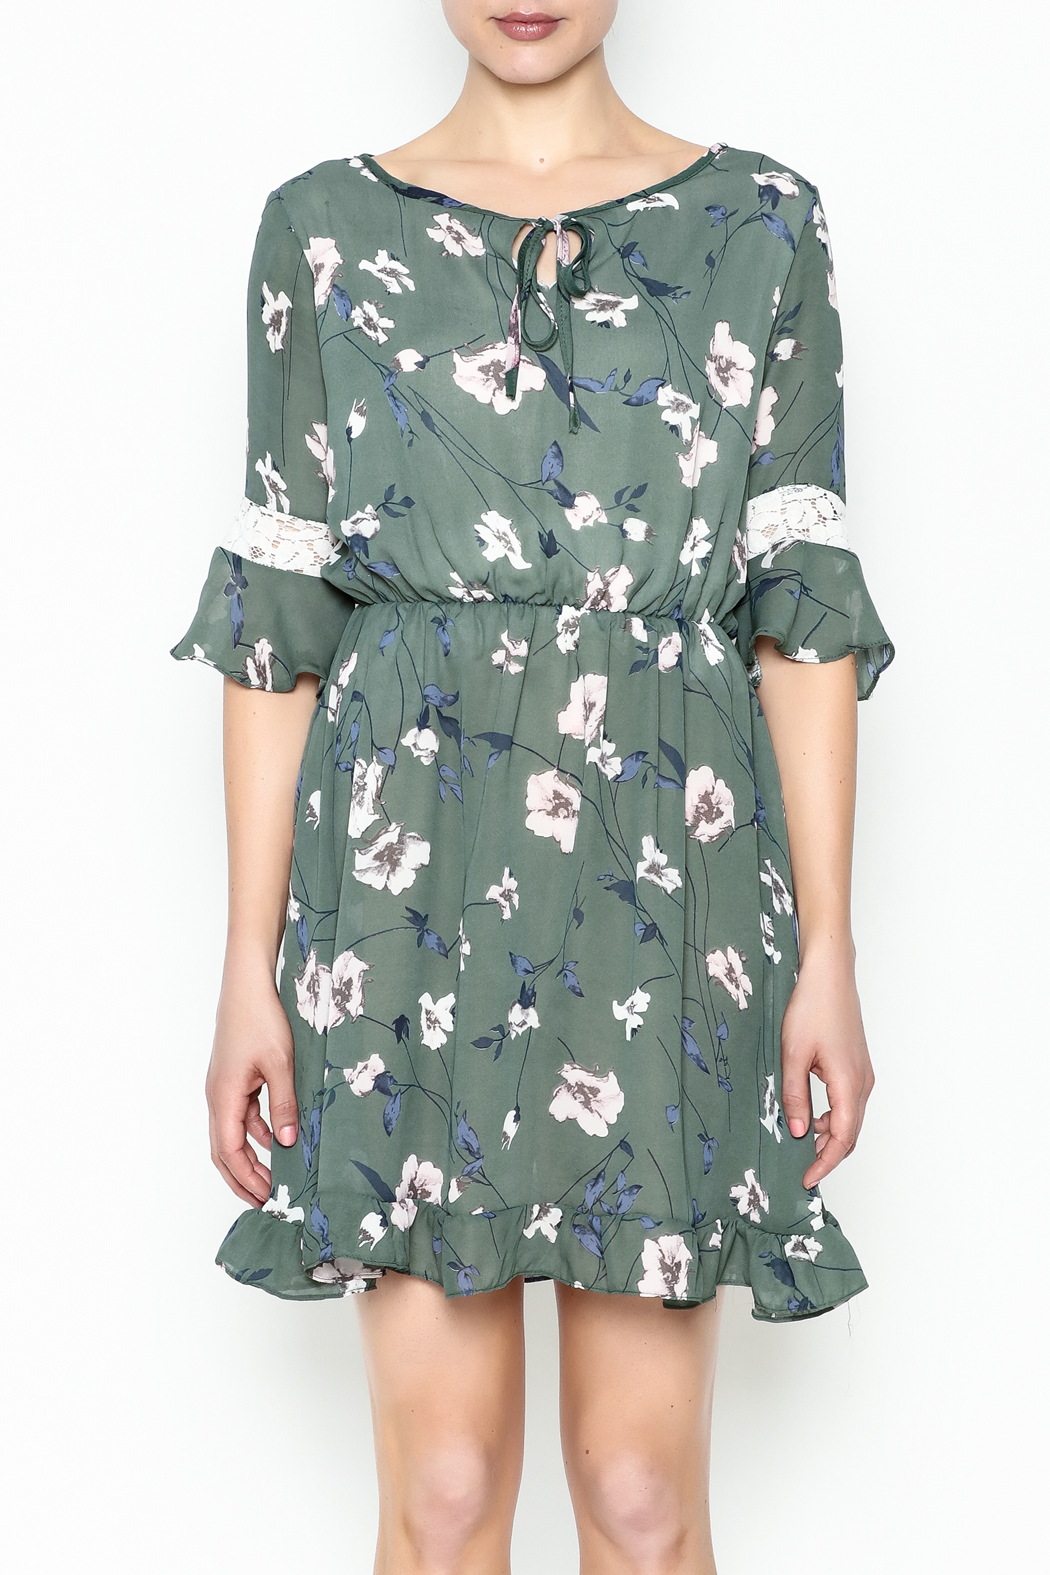 Fashion Pickle Floral Lace Printed Dress - Front Full Image